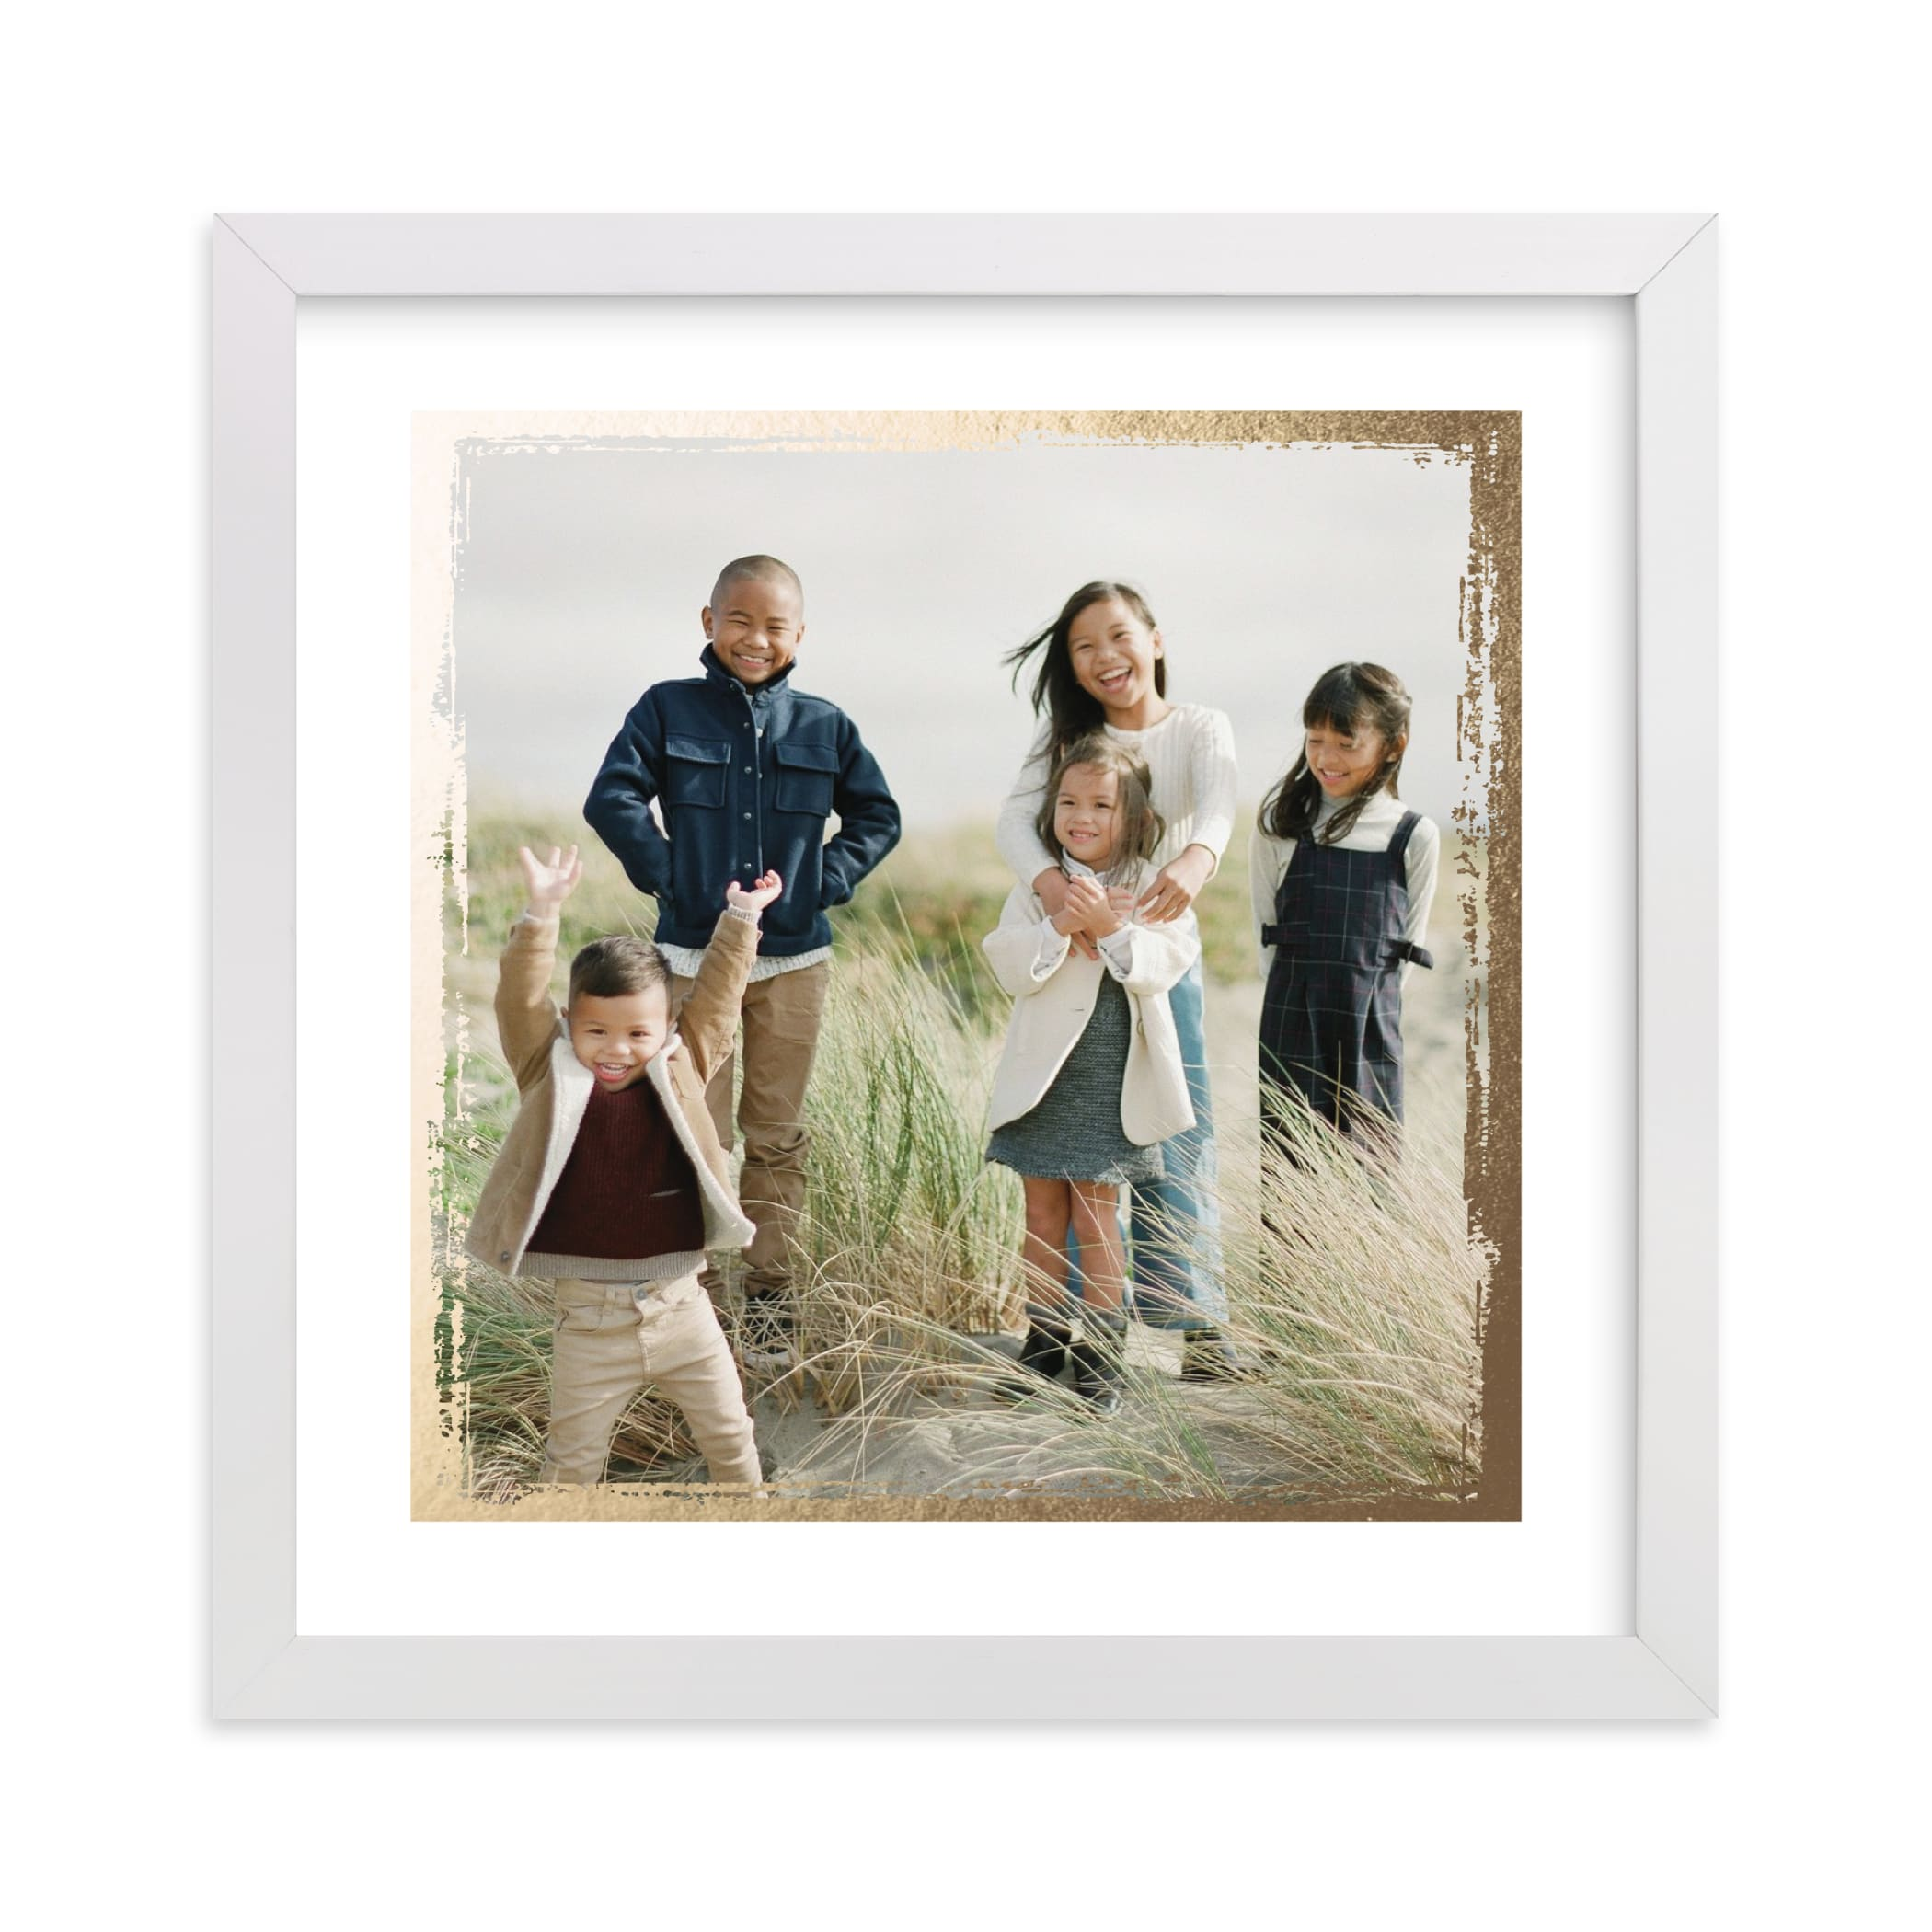 This is a gold foil stamped photo art by cambria called Rustic Edges.